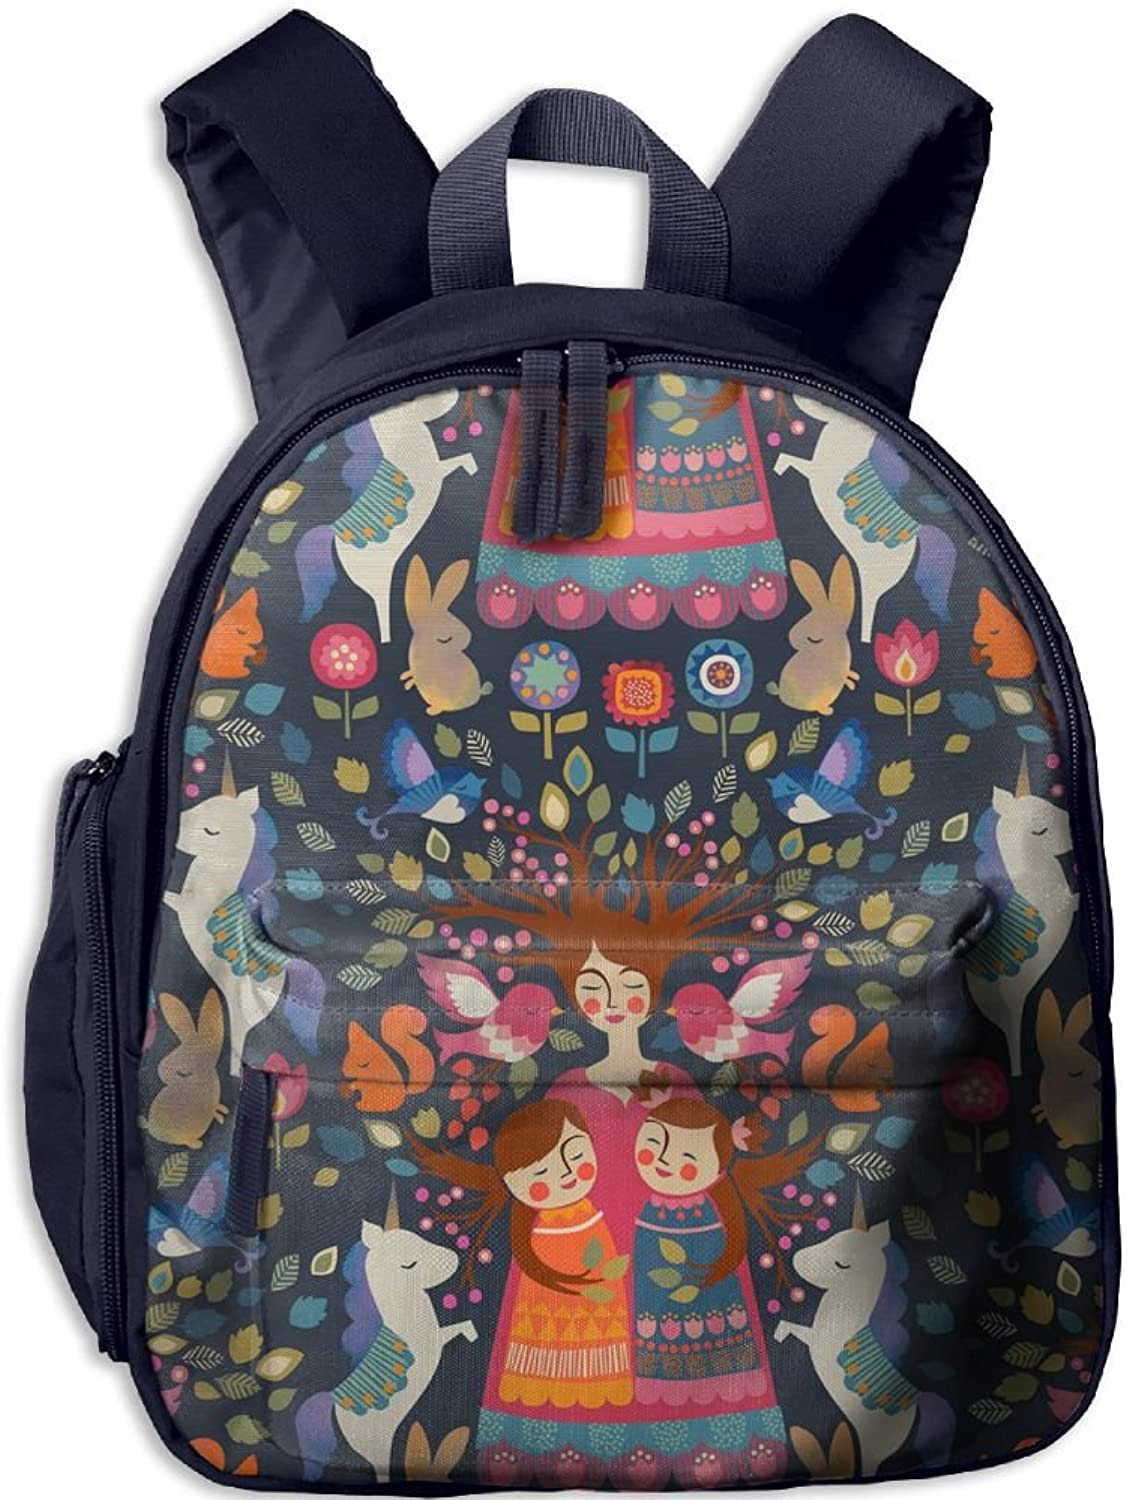 School Bag Whimsical Folk Art(2392) With Durable Travel Camping Backpack For Boys And Girls